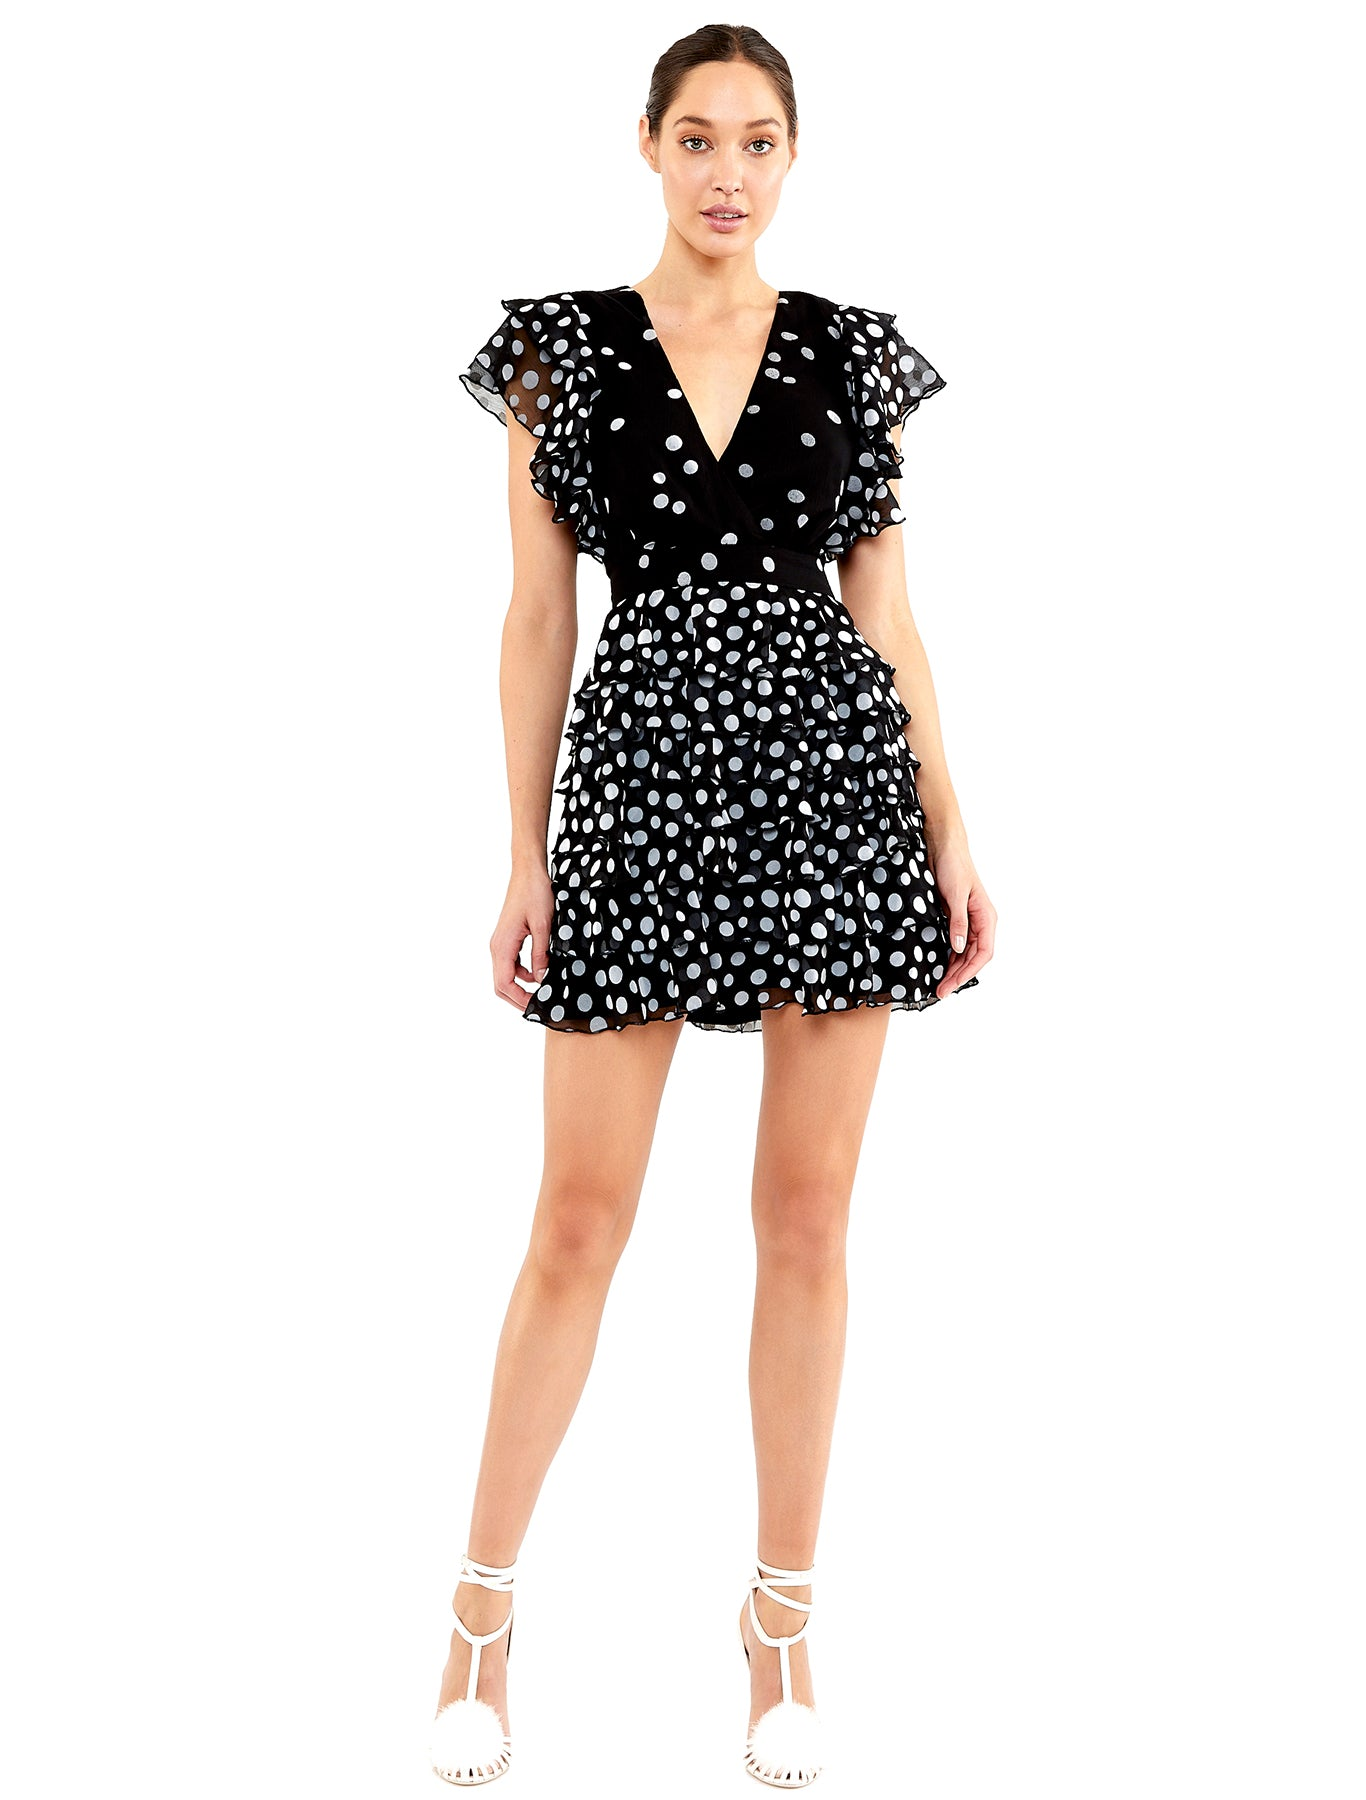 LOVE SHACK MINI DRESS